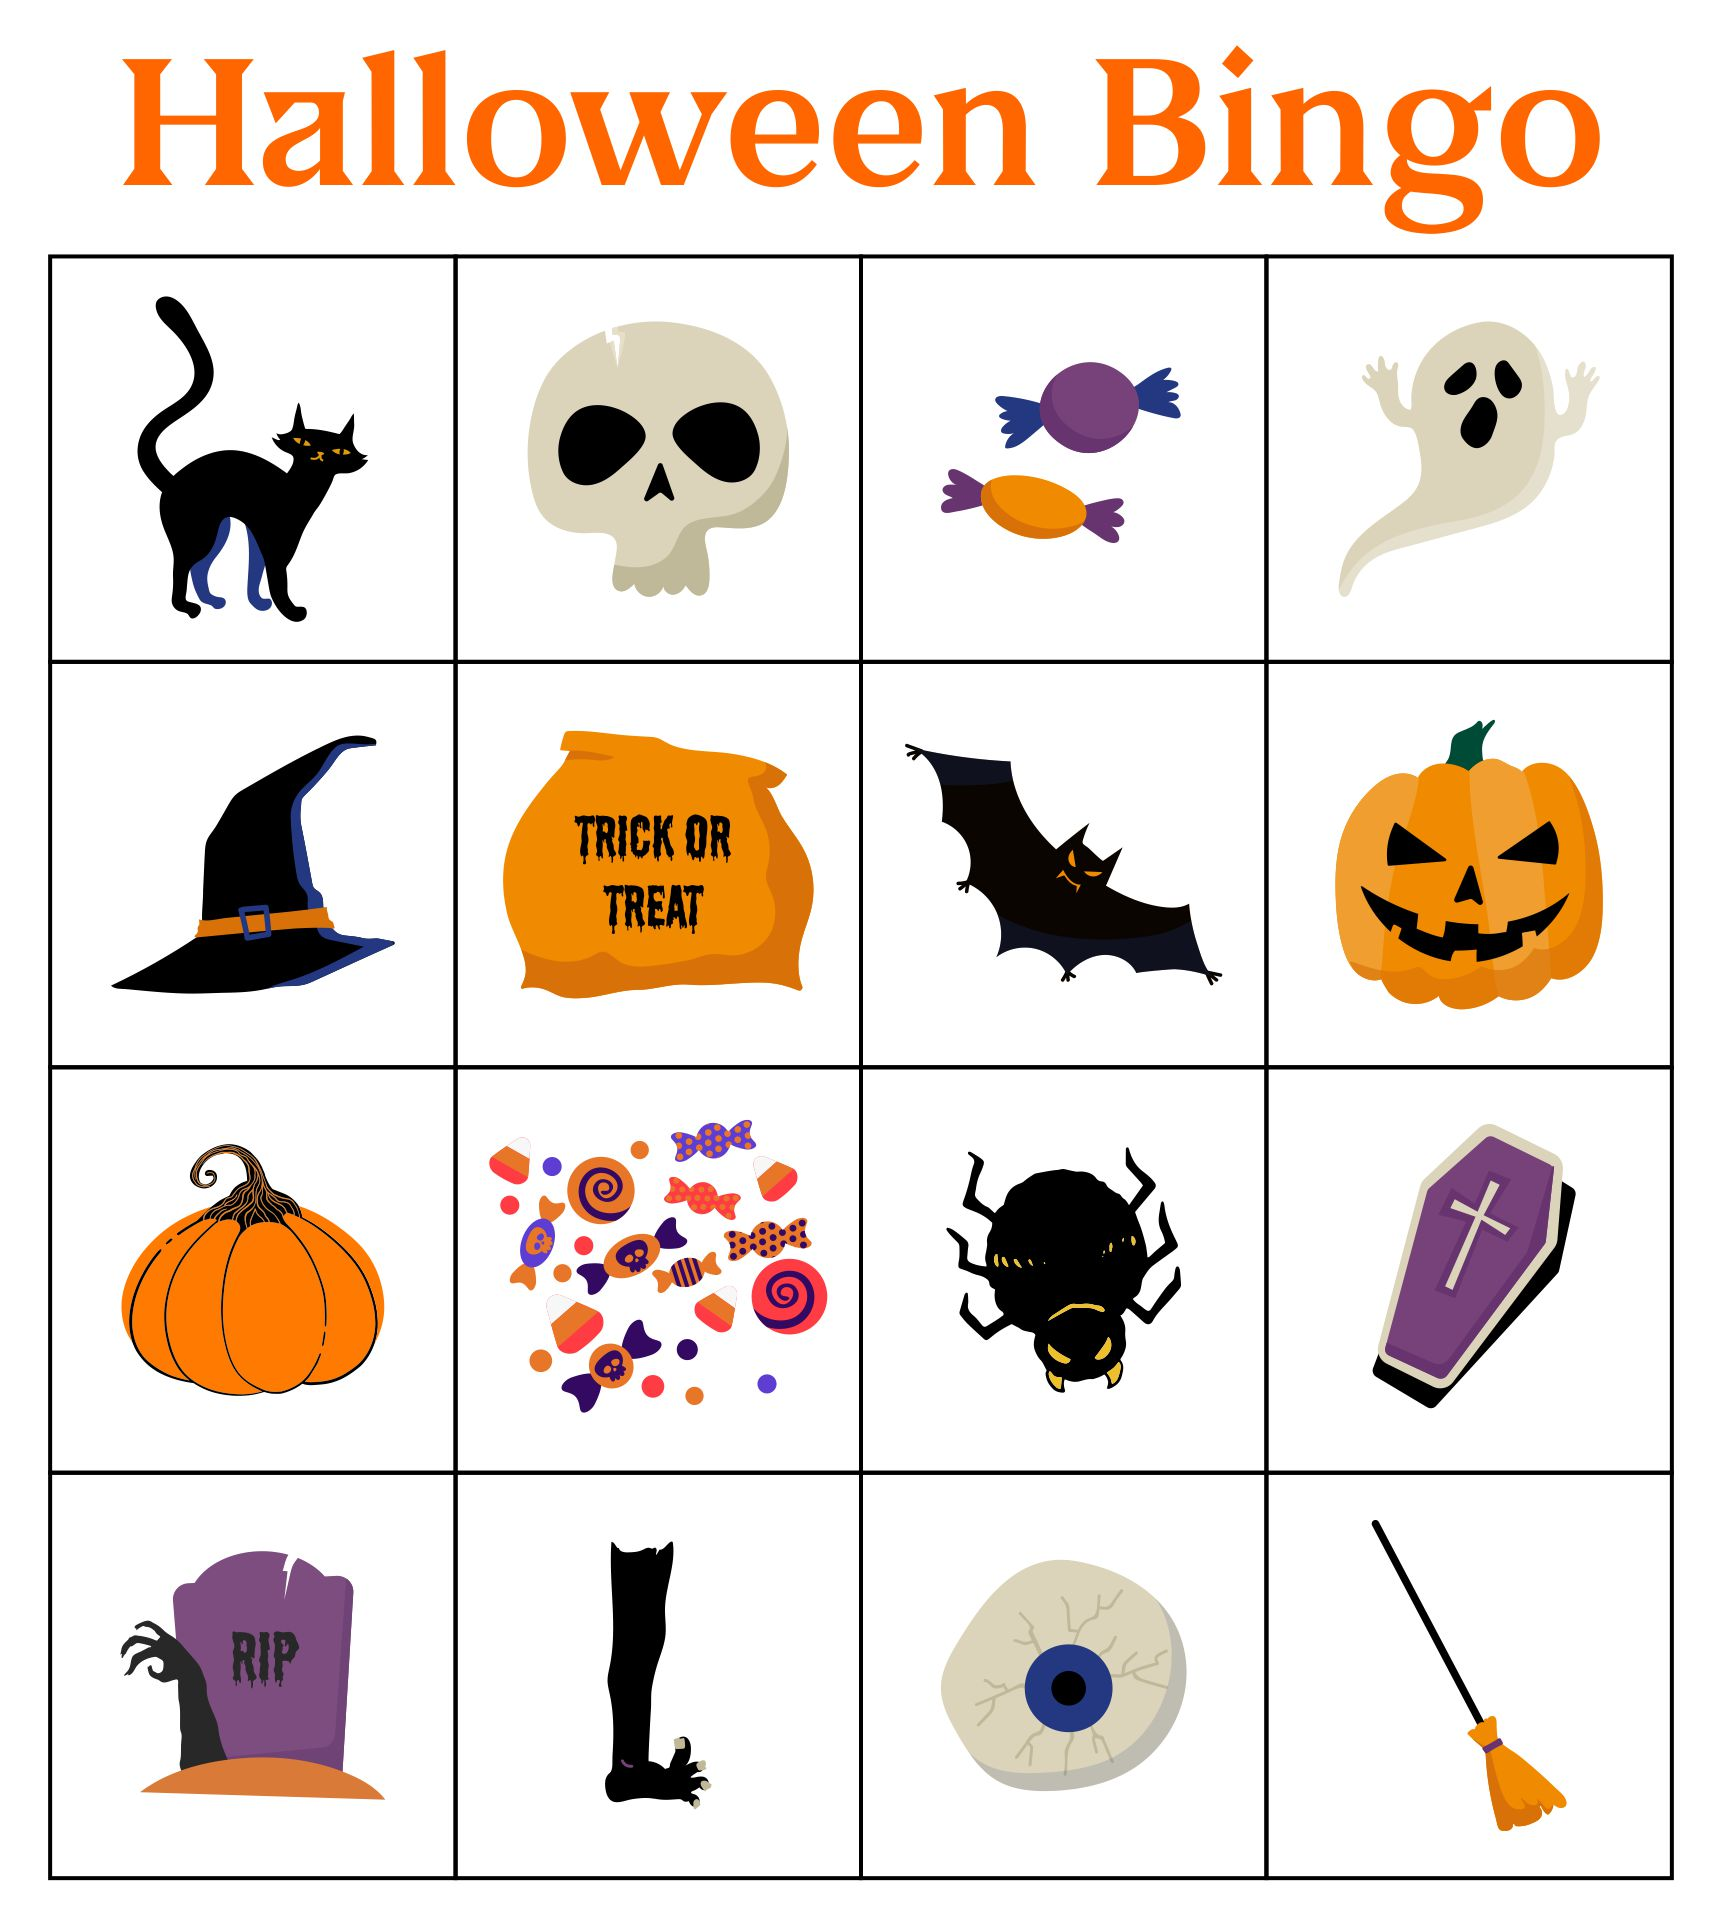 Halloween Images Bingo Cards To Download, Print And Customize